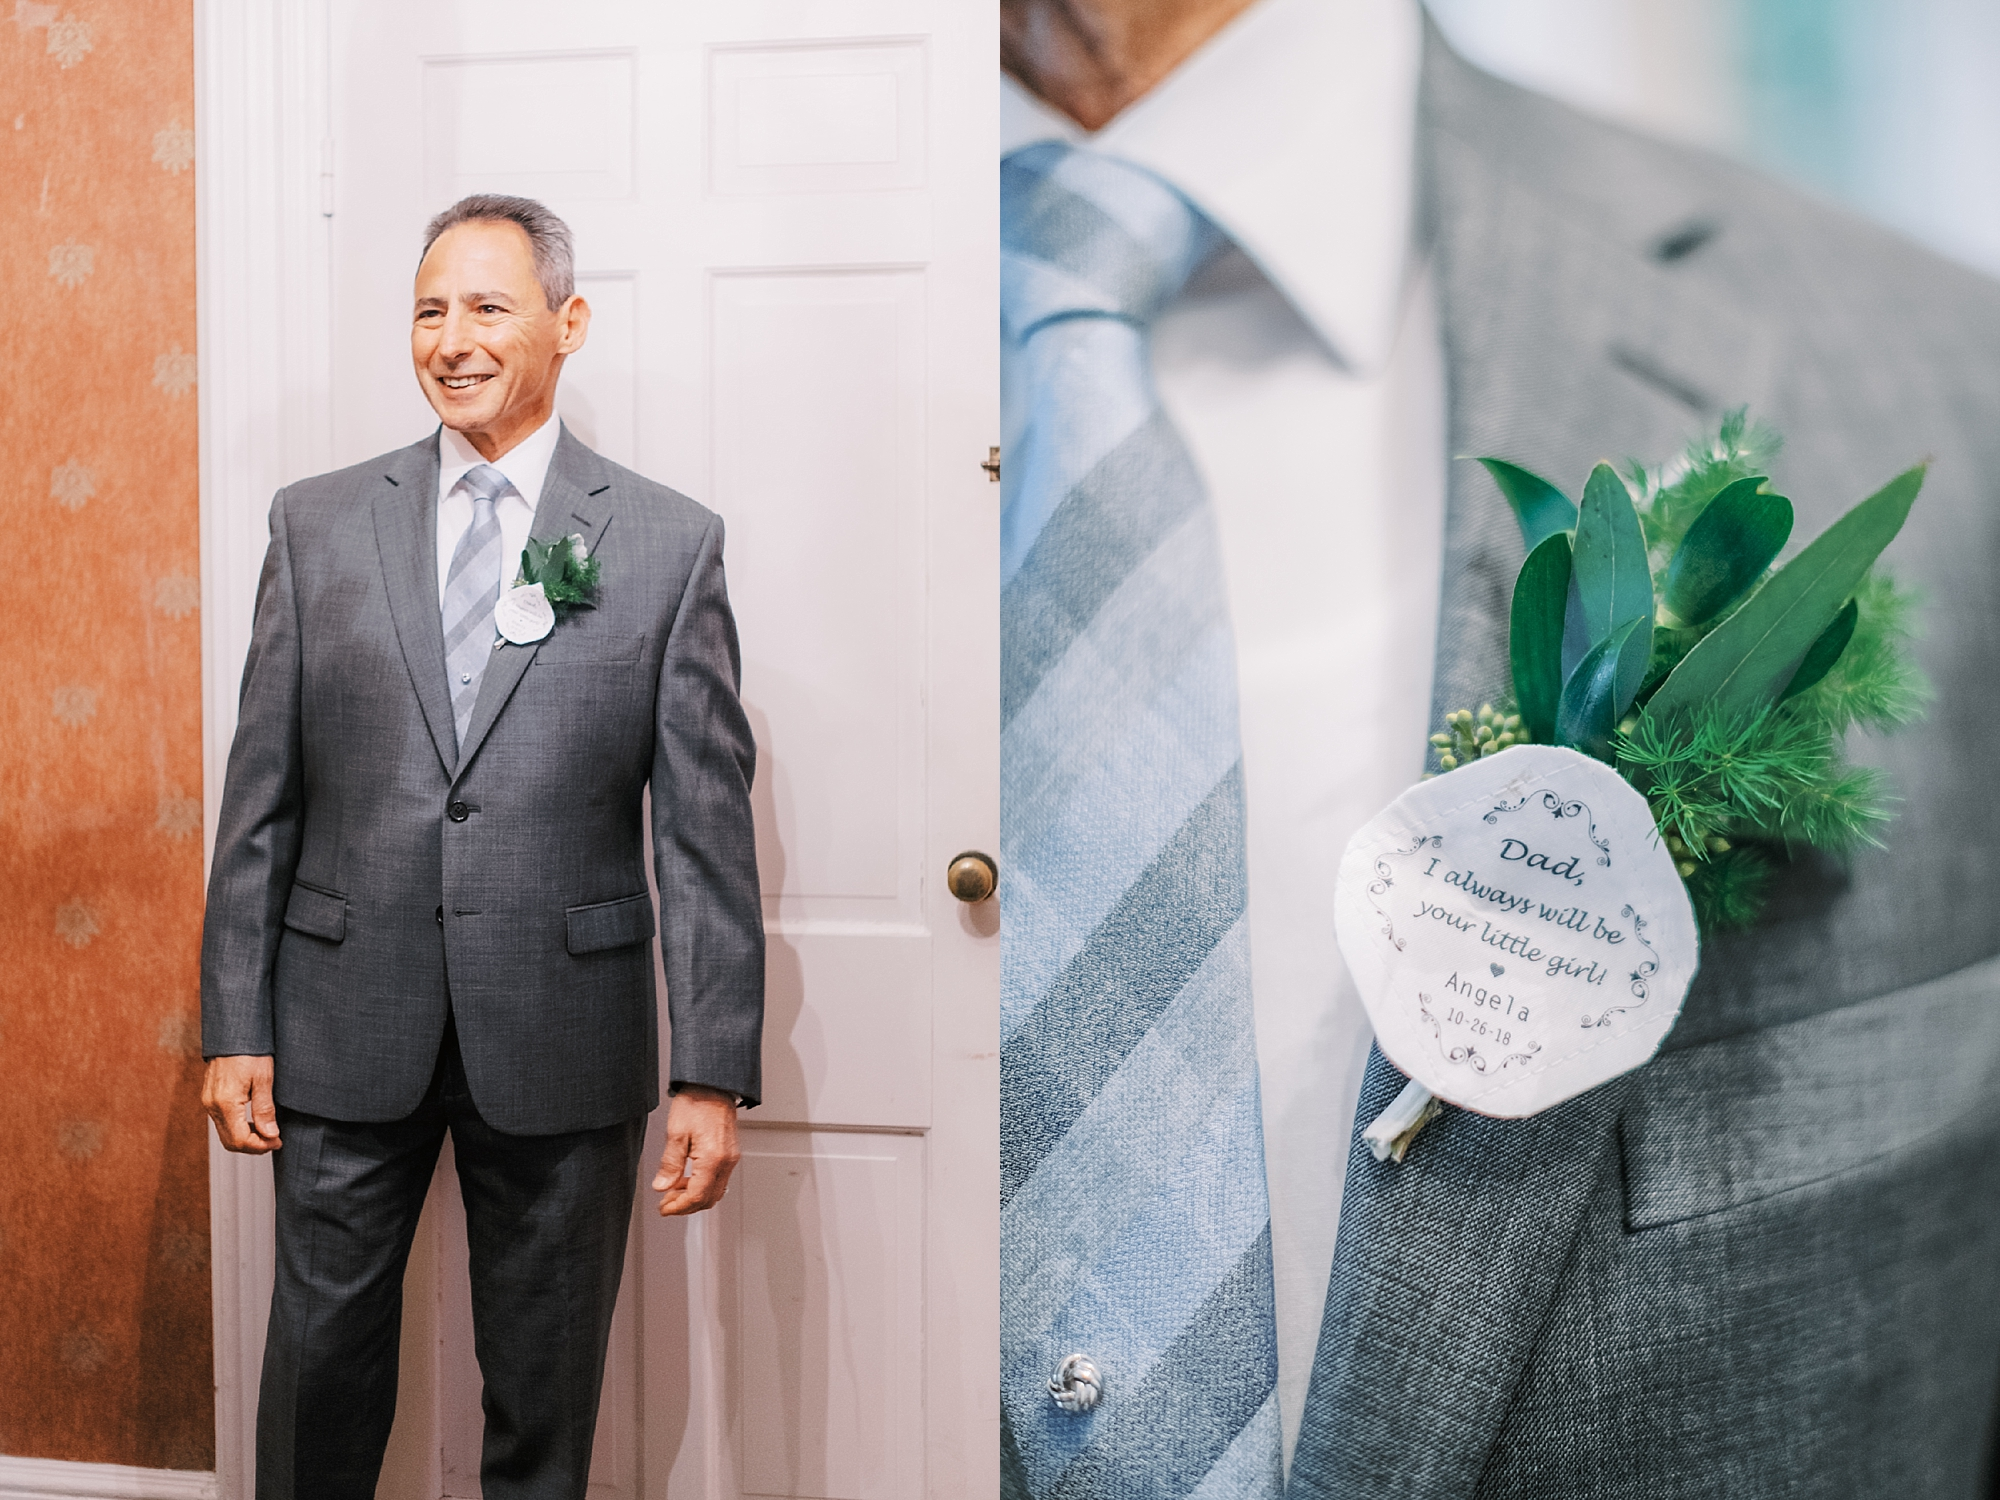 Sweet Garden Wedding Photography Abbie Holmes Estate in Cape May NJ by Magdalena Studios 0014